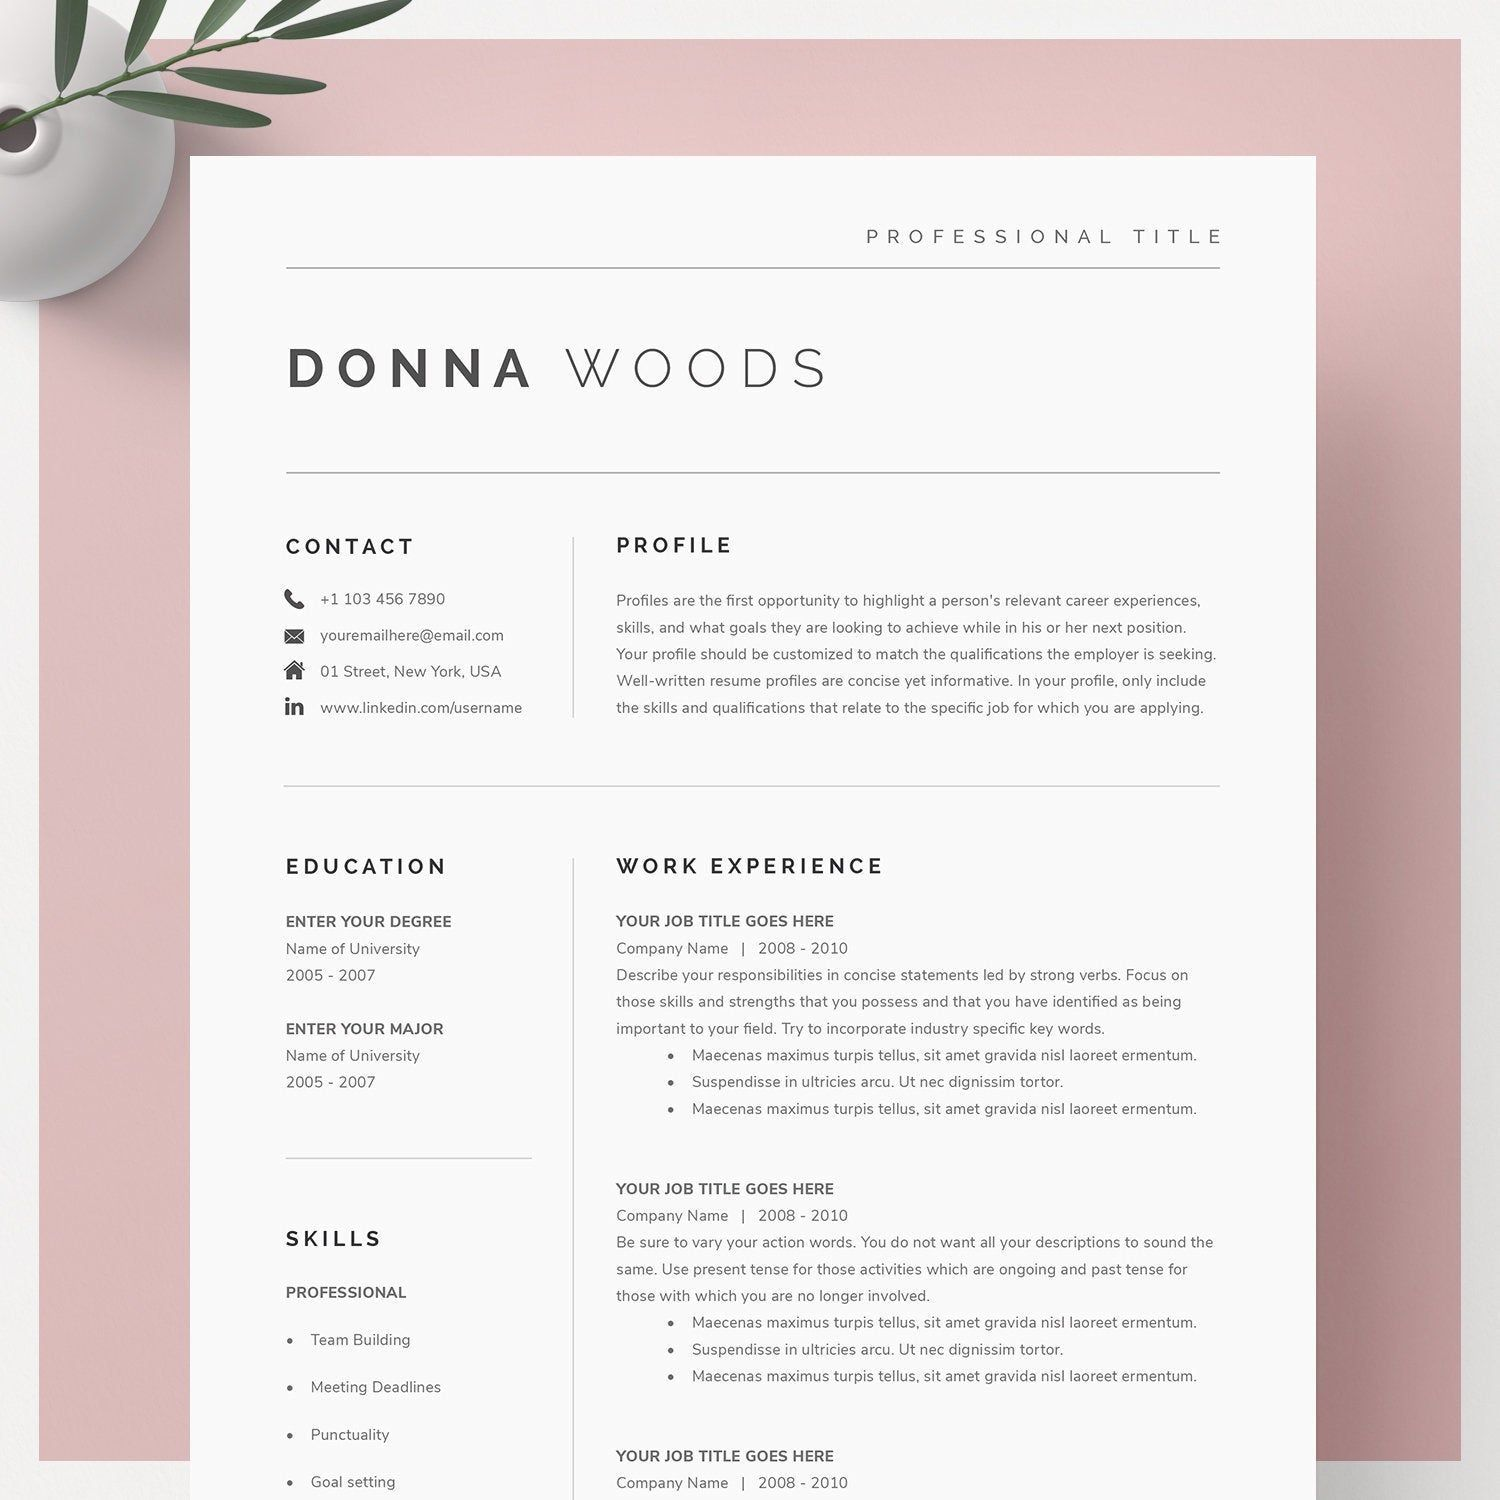 Google Docs Resume Template, Resume Template, Resume Template Word, Resume Template Pages, Professional Resume Template, CV Template,CV Word